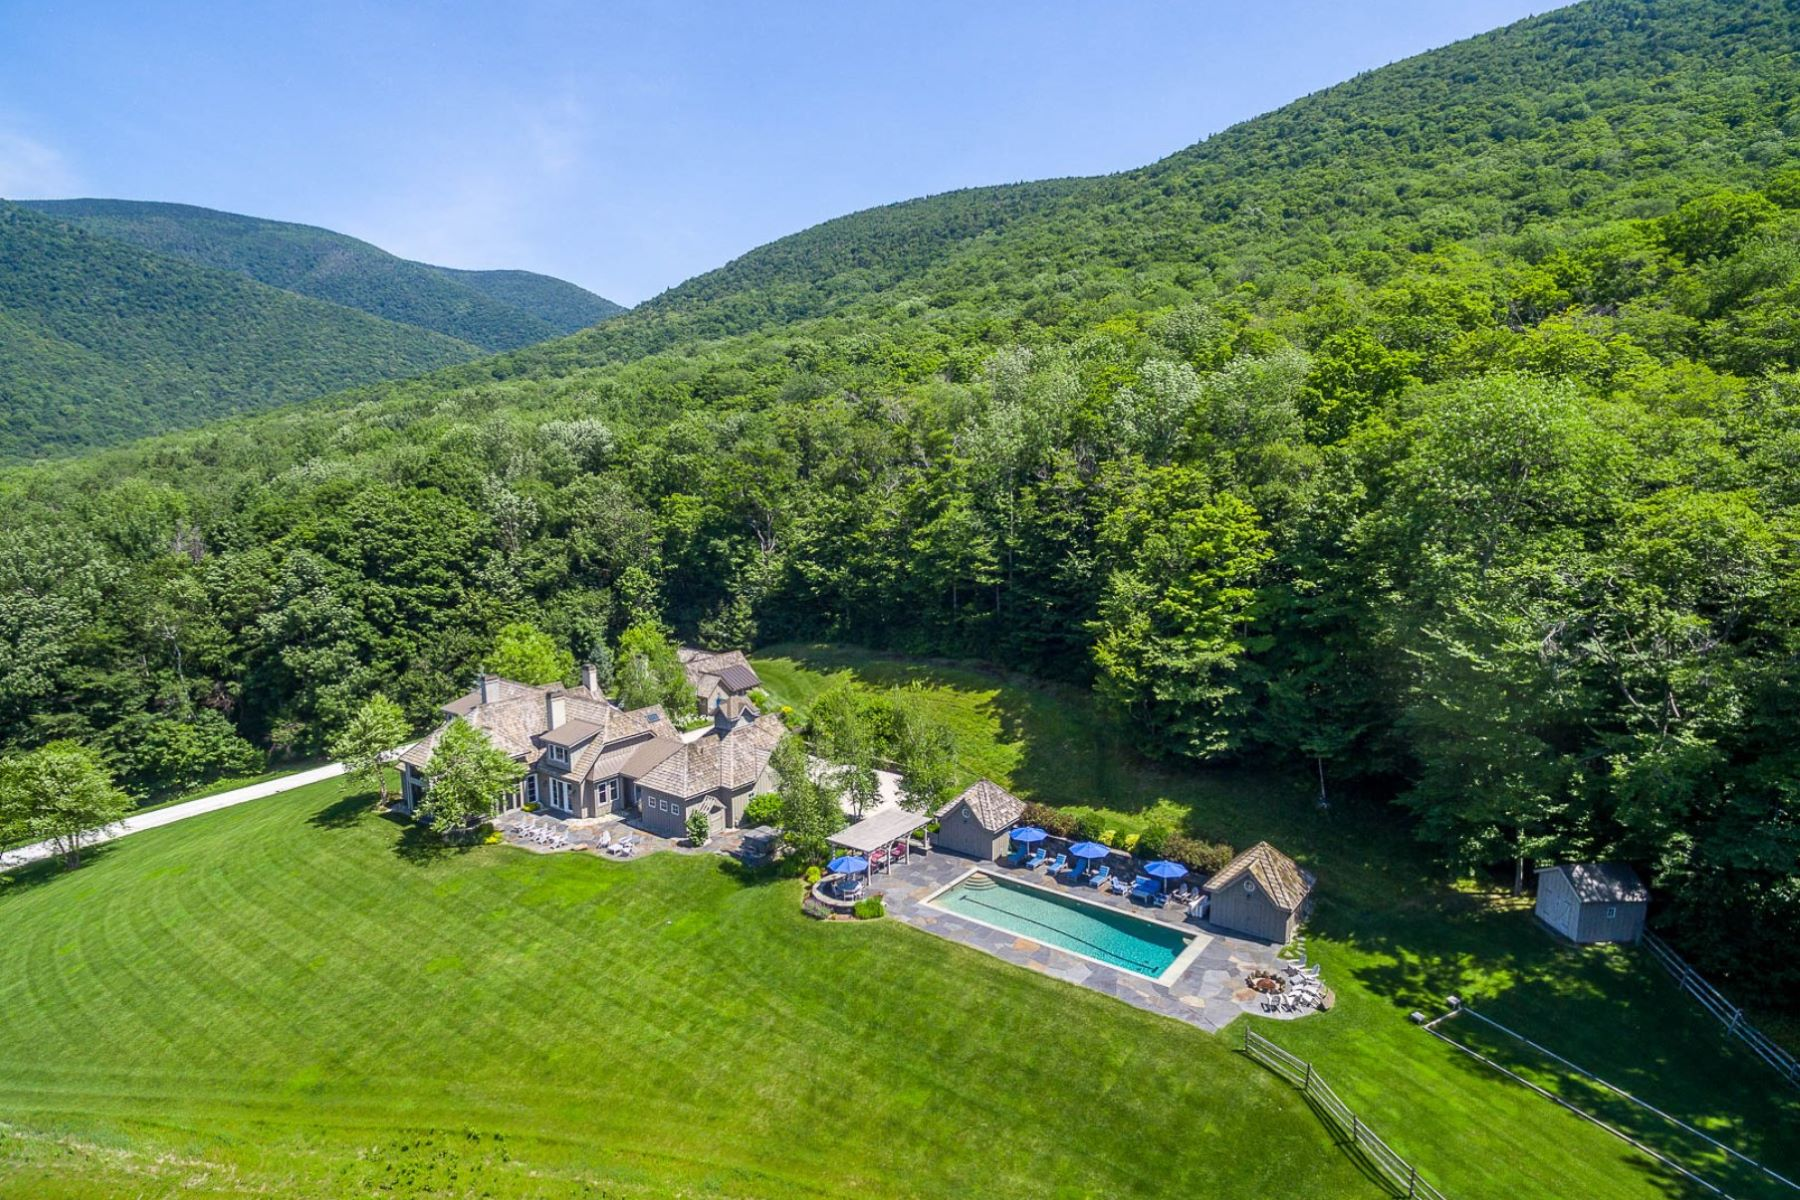 Single Family Home for Sale at Top Of The World Views 190 Turkey Run Ln Dorset, Vermont, 05251 United States